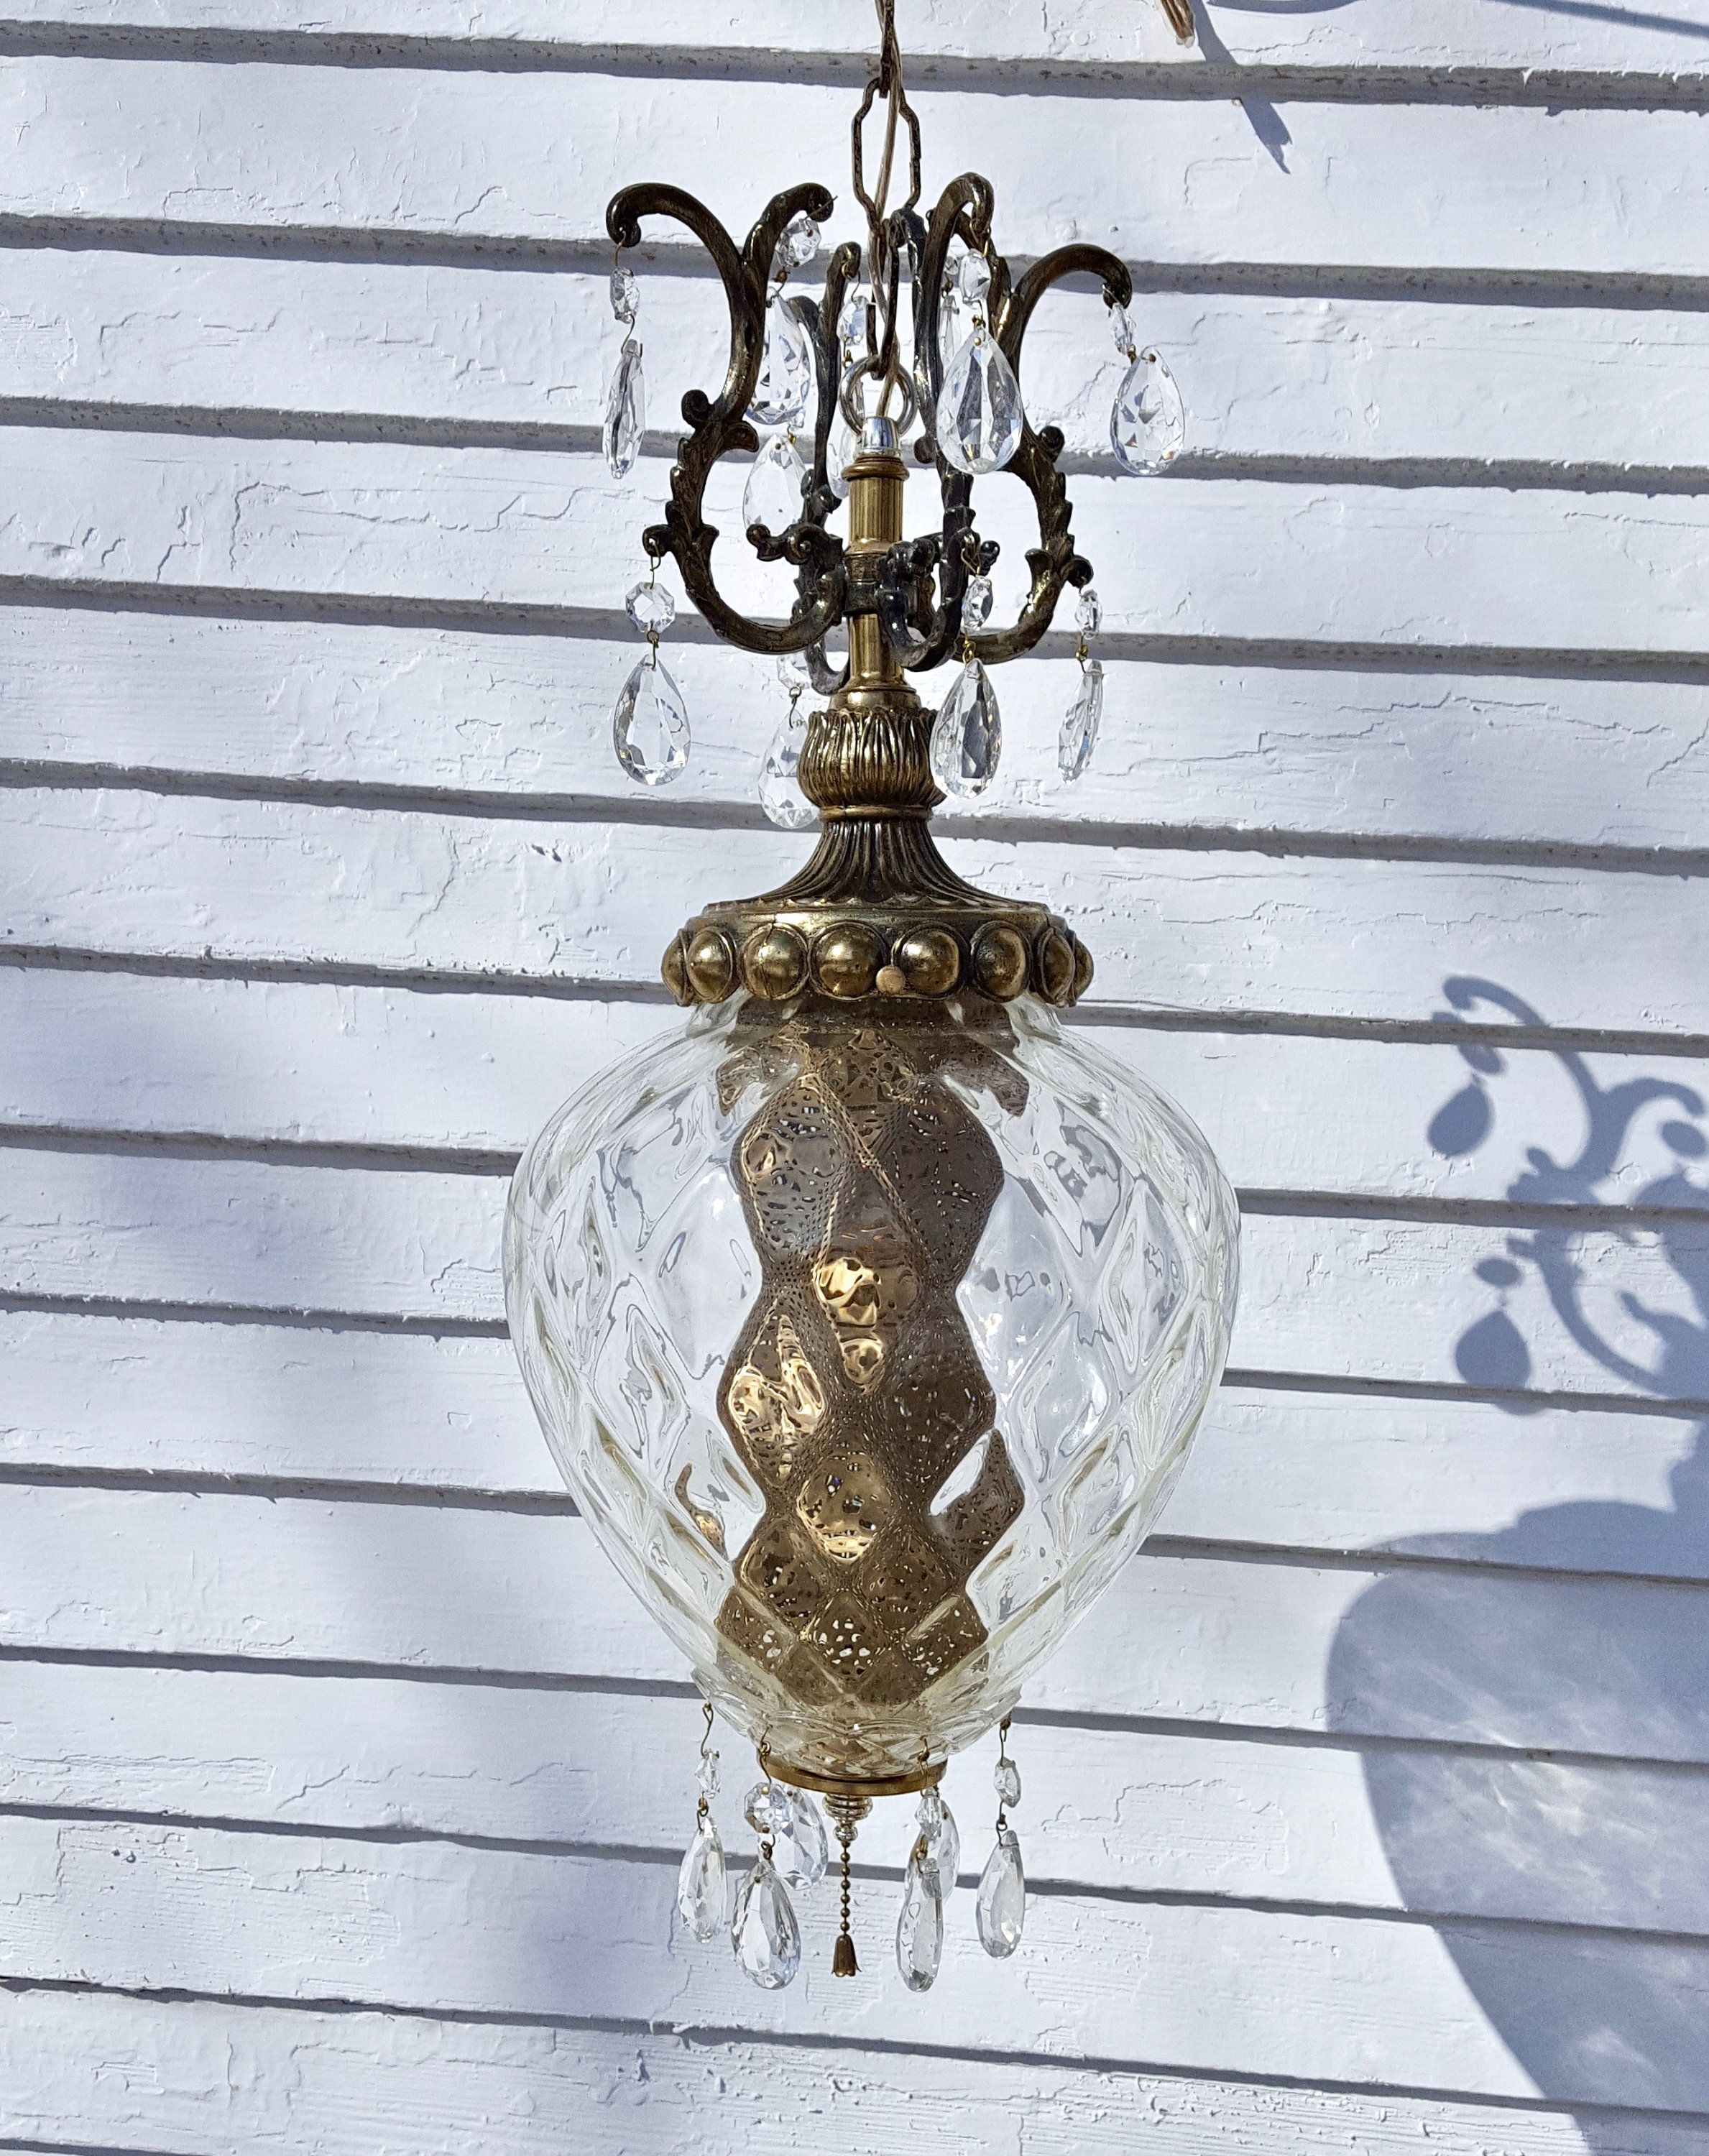 Vintage Hanging Lamp With Crystals Or Swag Lamp Pull Chain Or Ceiling Light Fixture Swag Lamp Vintage Light Fixtures Hanging Lamp